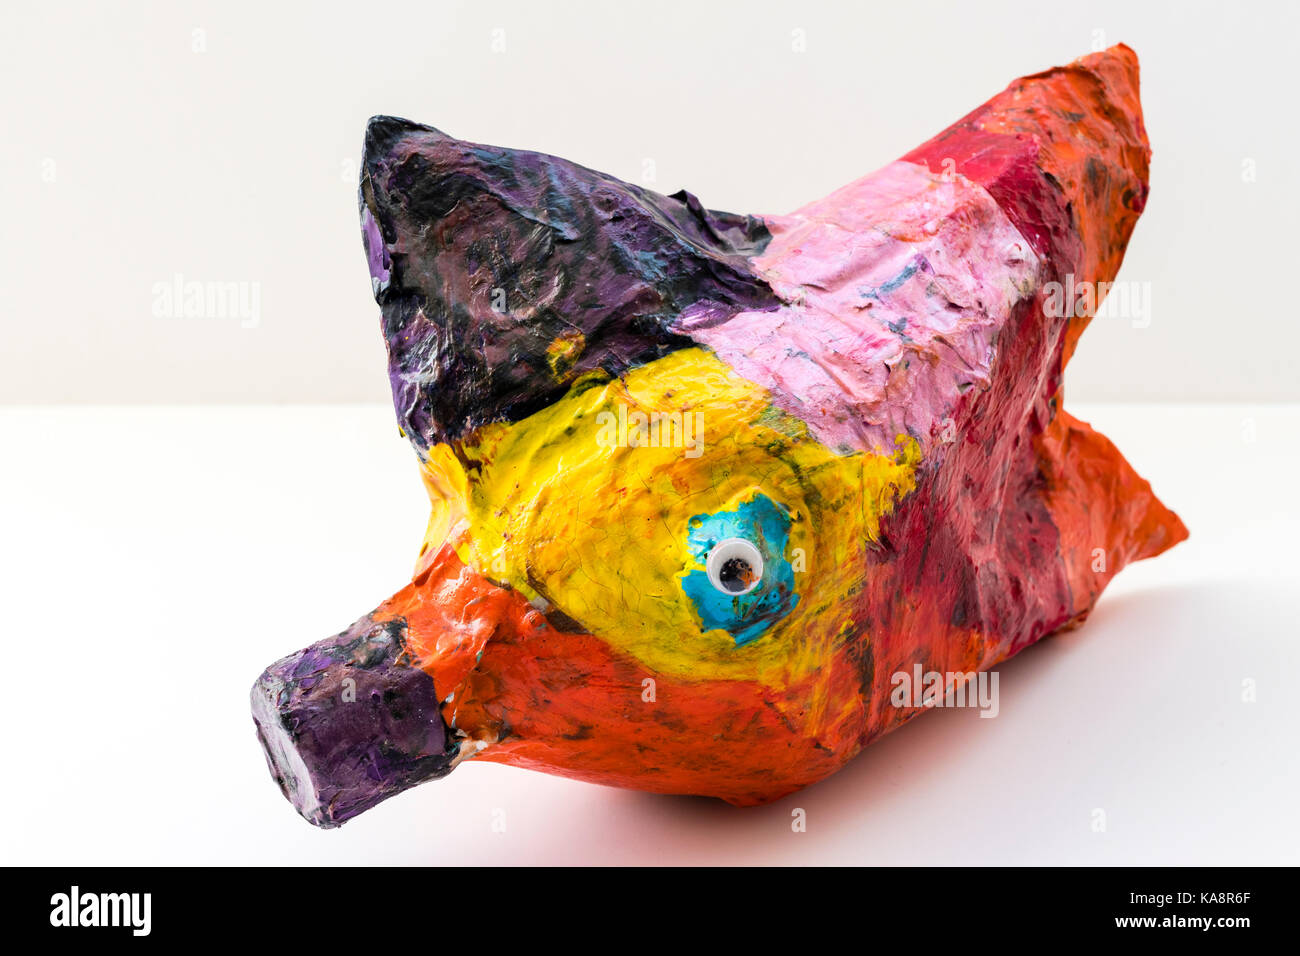 England. Child's creation, papier-mache fish multi-coloured on light grey background. - Stock Image